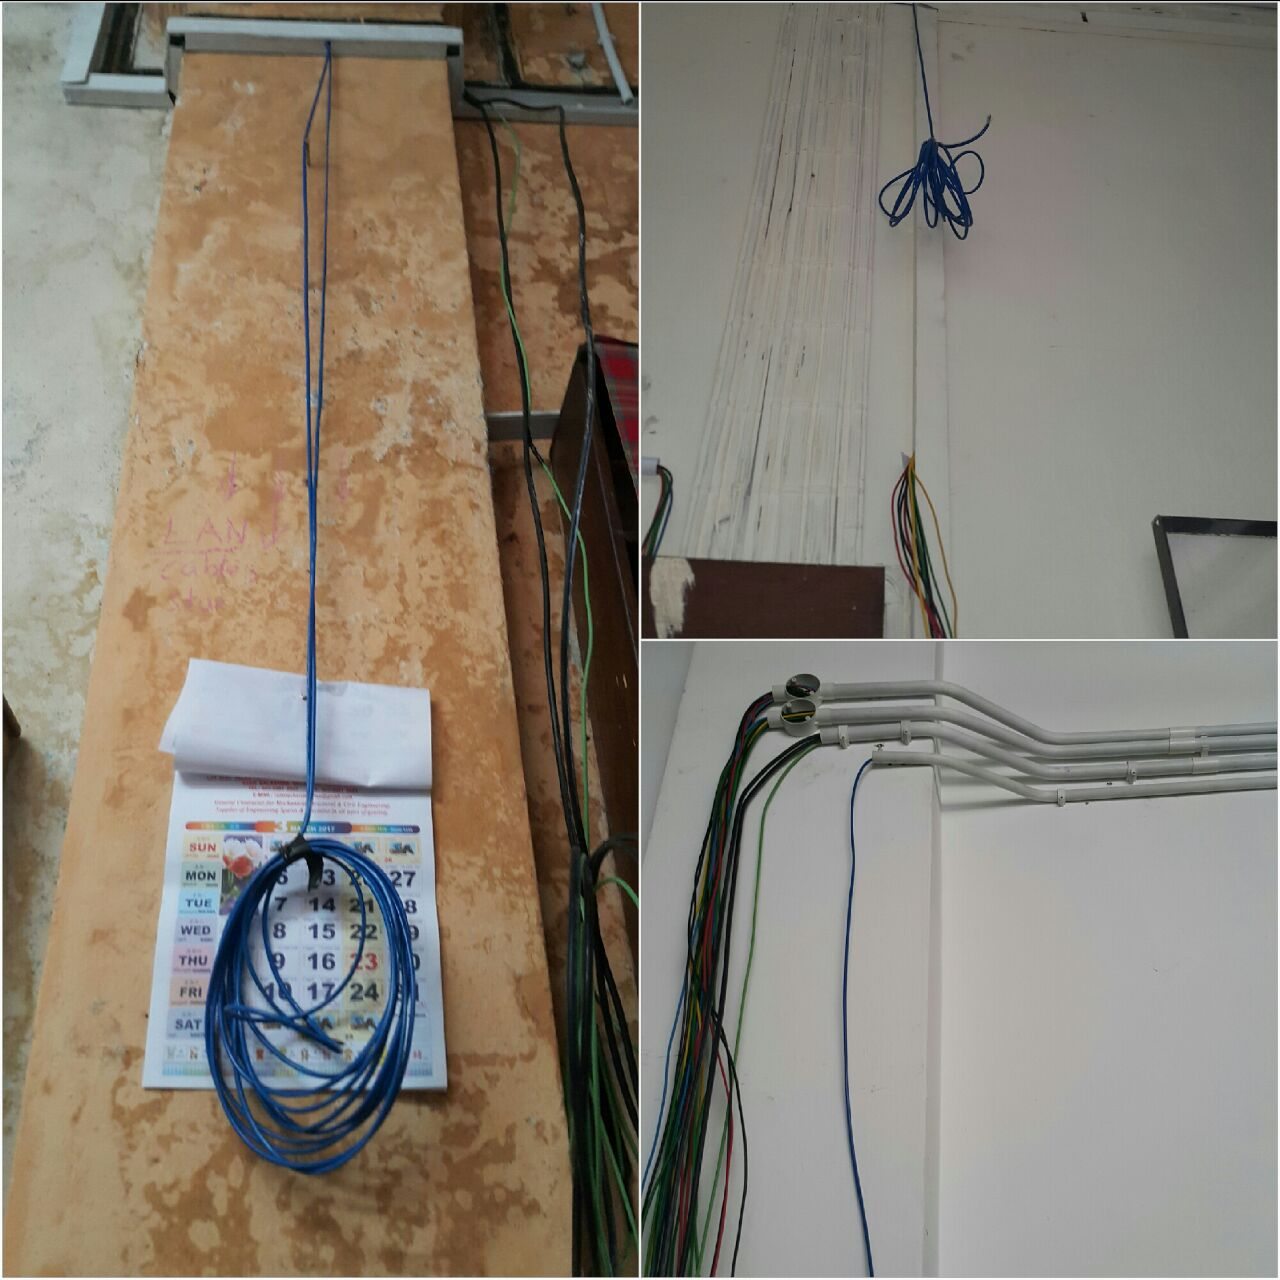 medium resolution of lan cables being installed